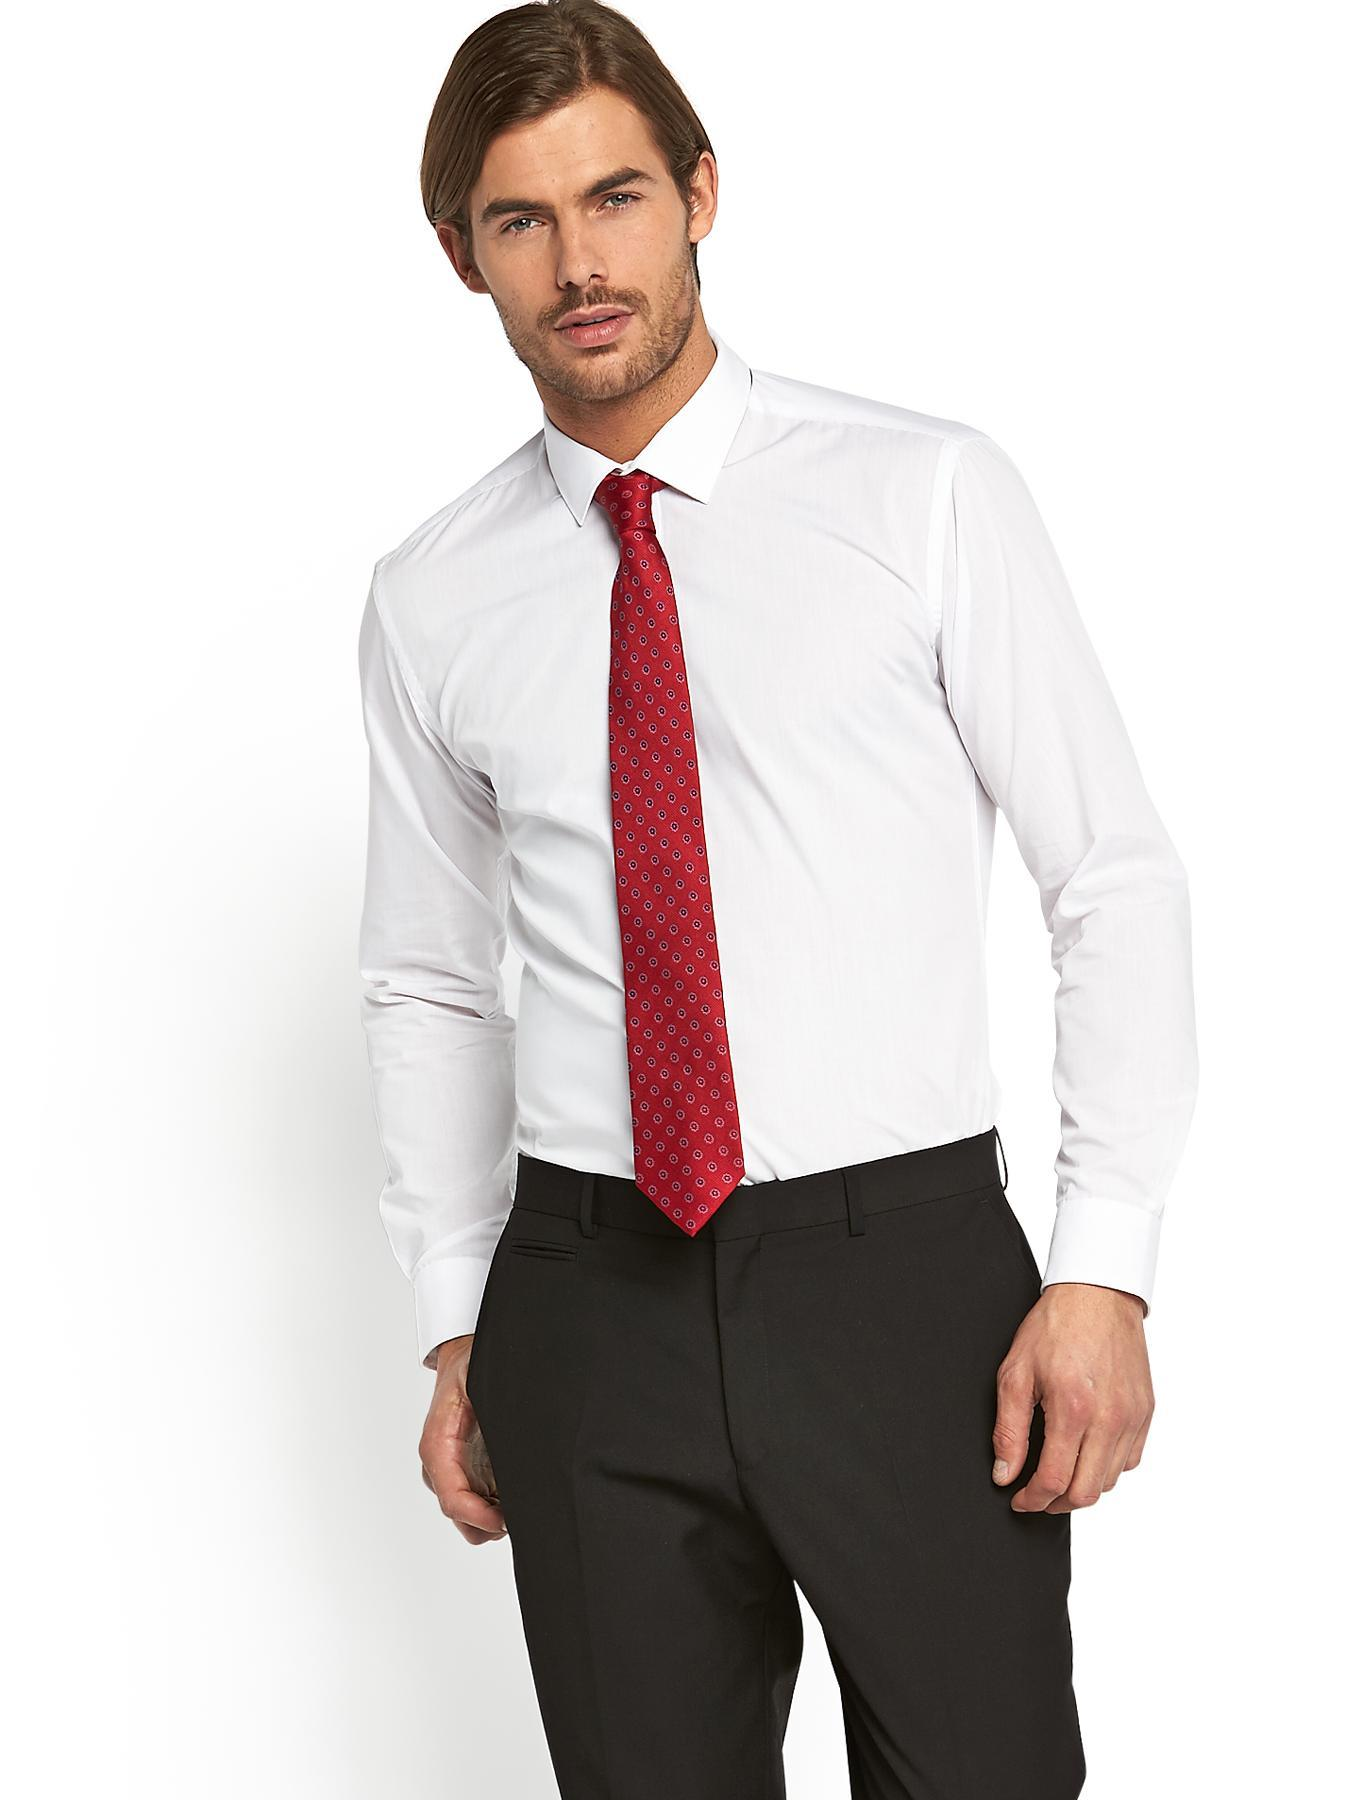 5943bb1c9 Black Shirt Gray Pants Red Tie